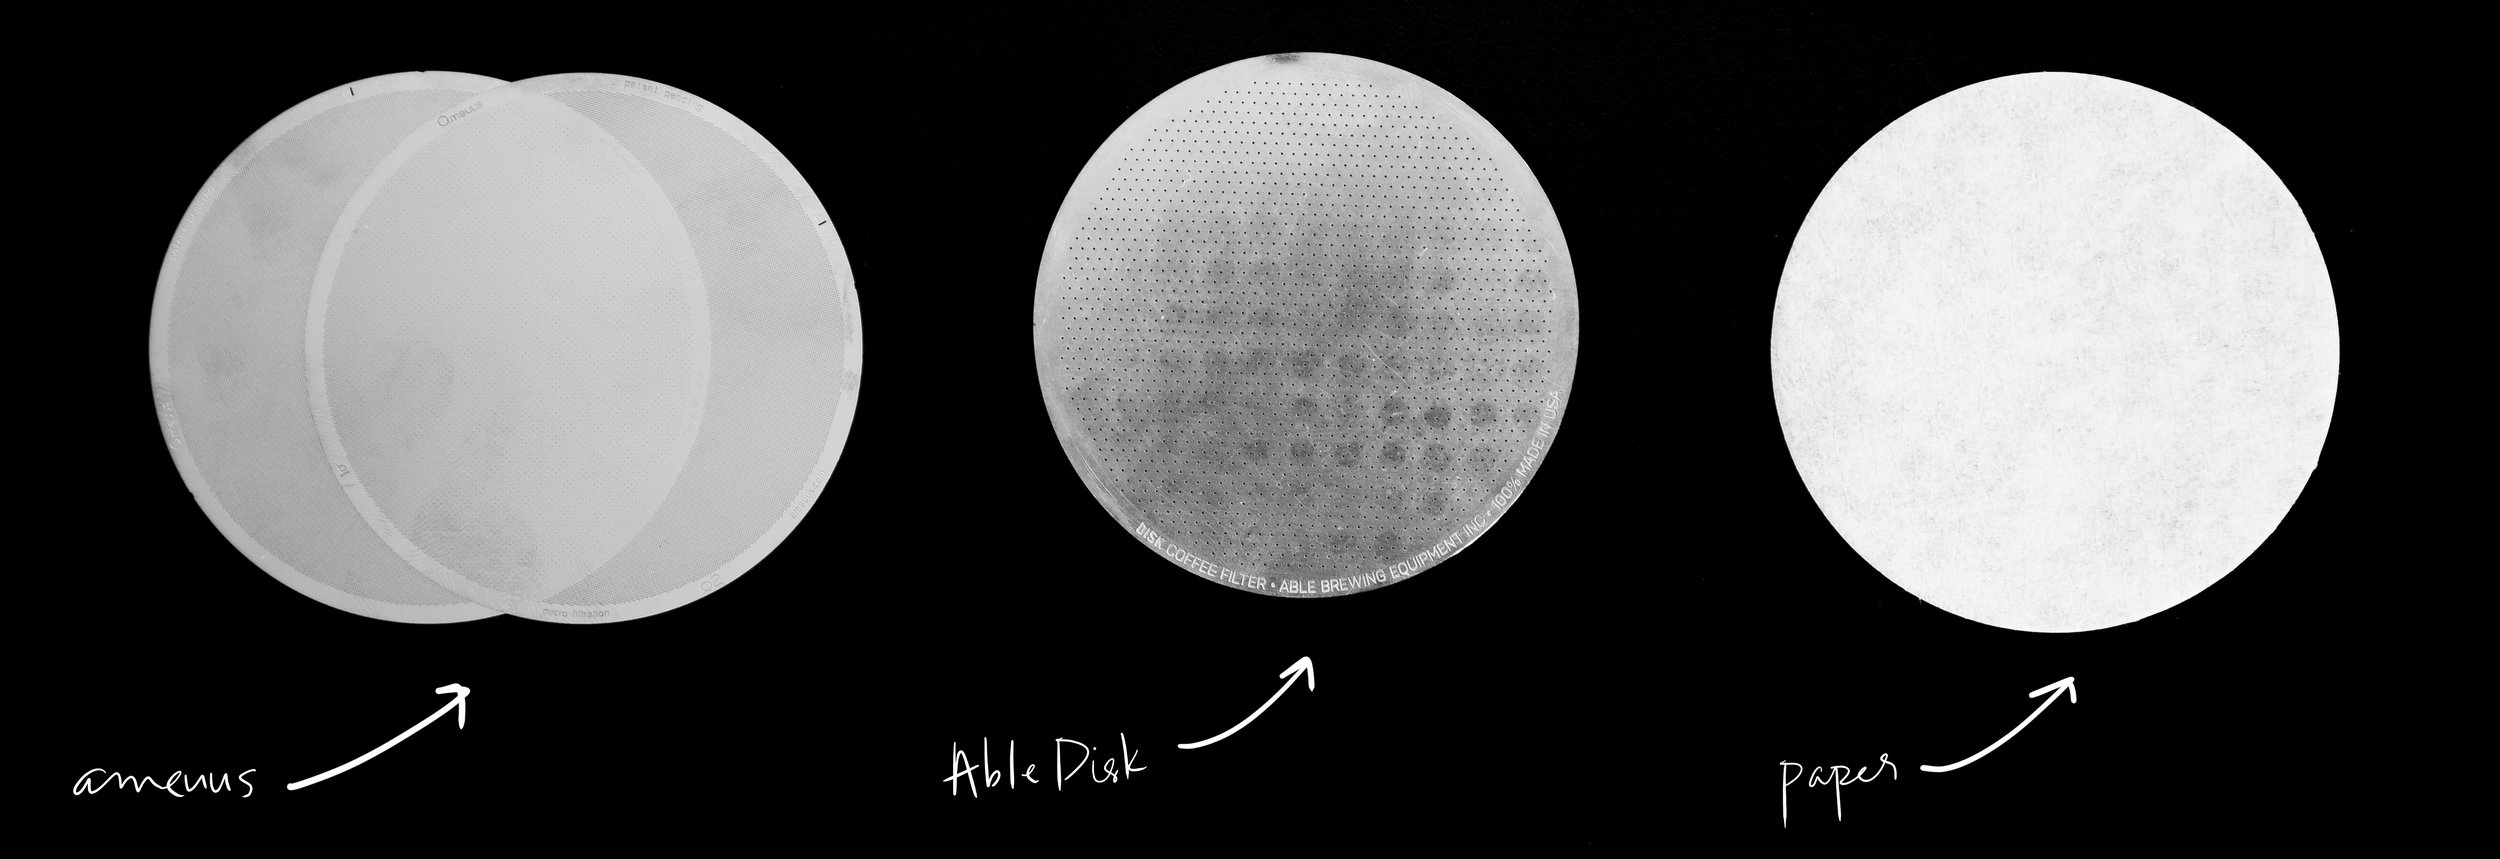 From left to right: ameuus o2 filter, Able Disk, standard paper filter